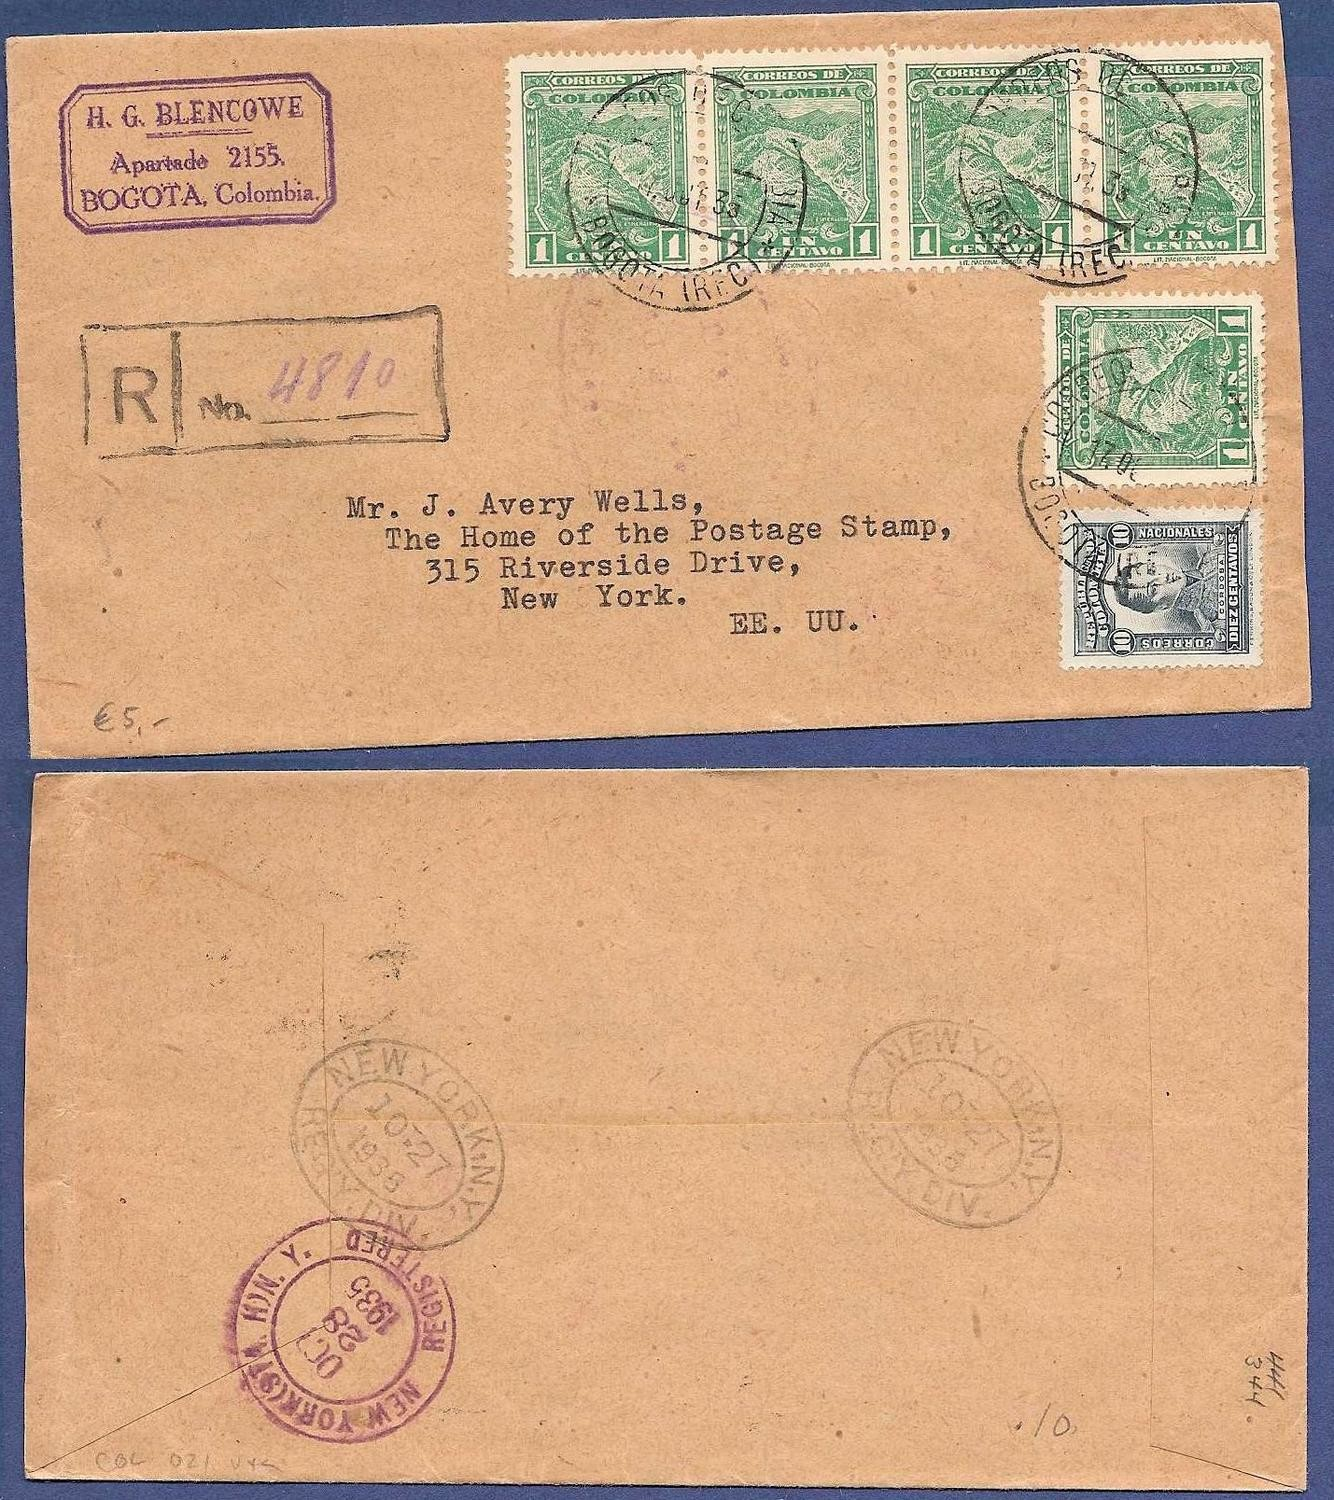 COLOMBIA R cover 1935 Bogota to USA